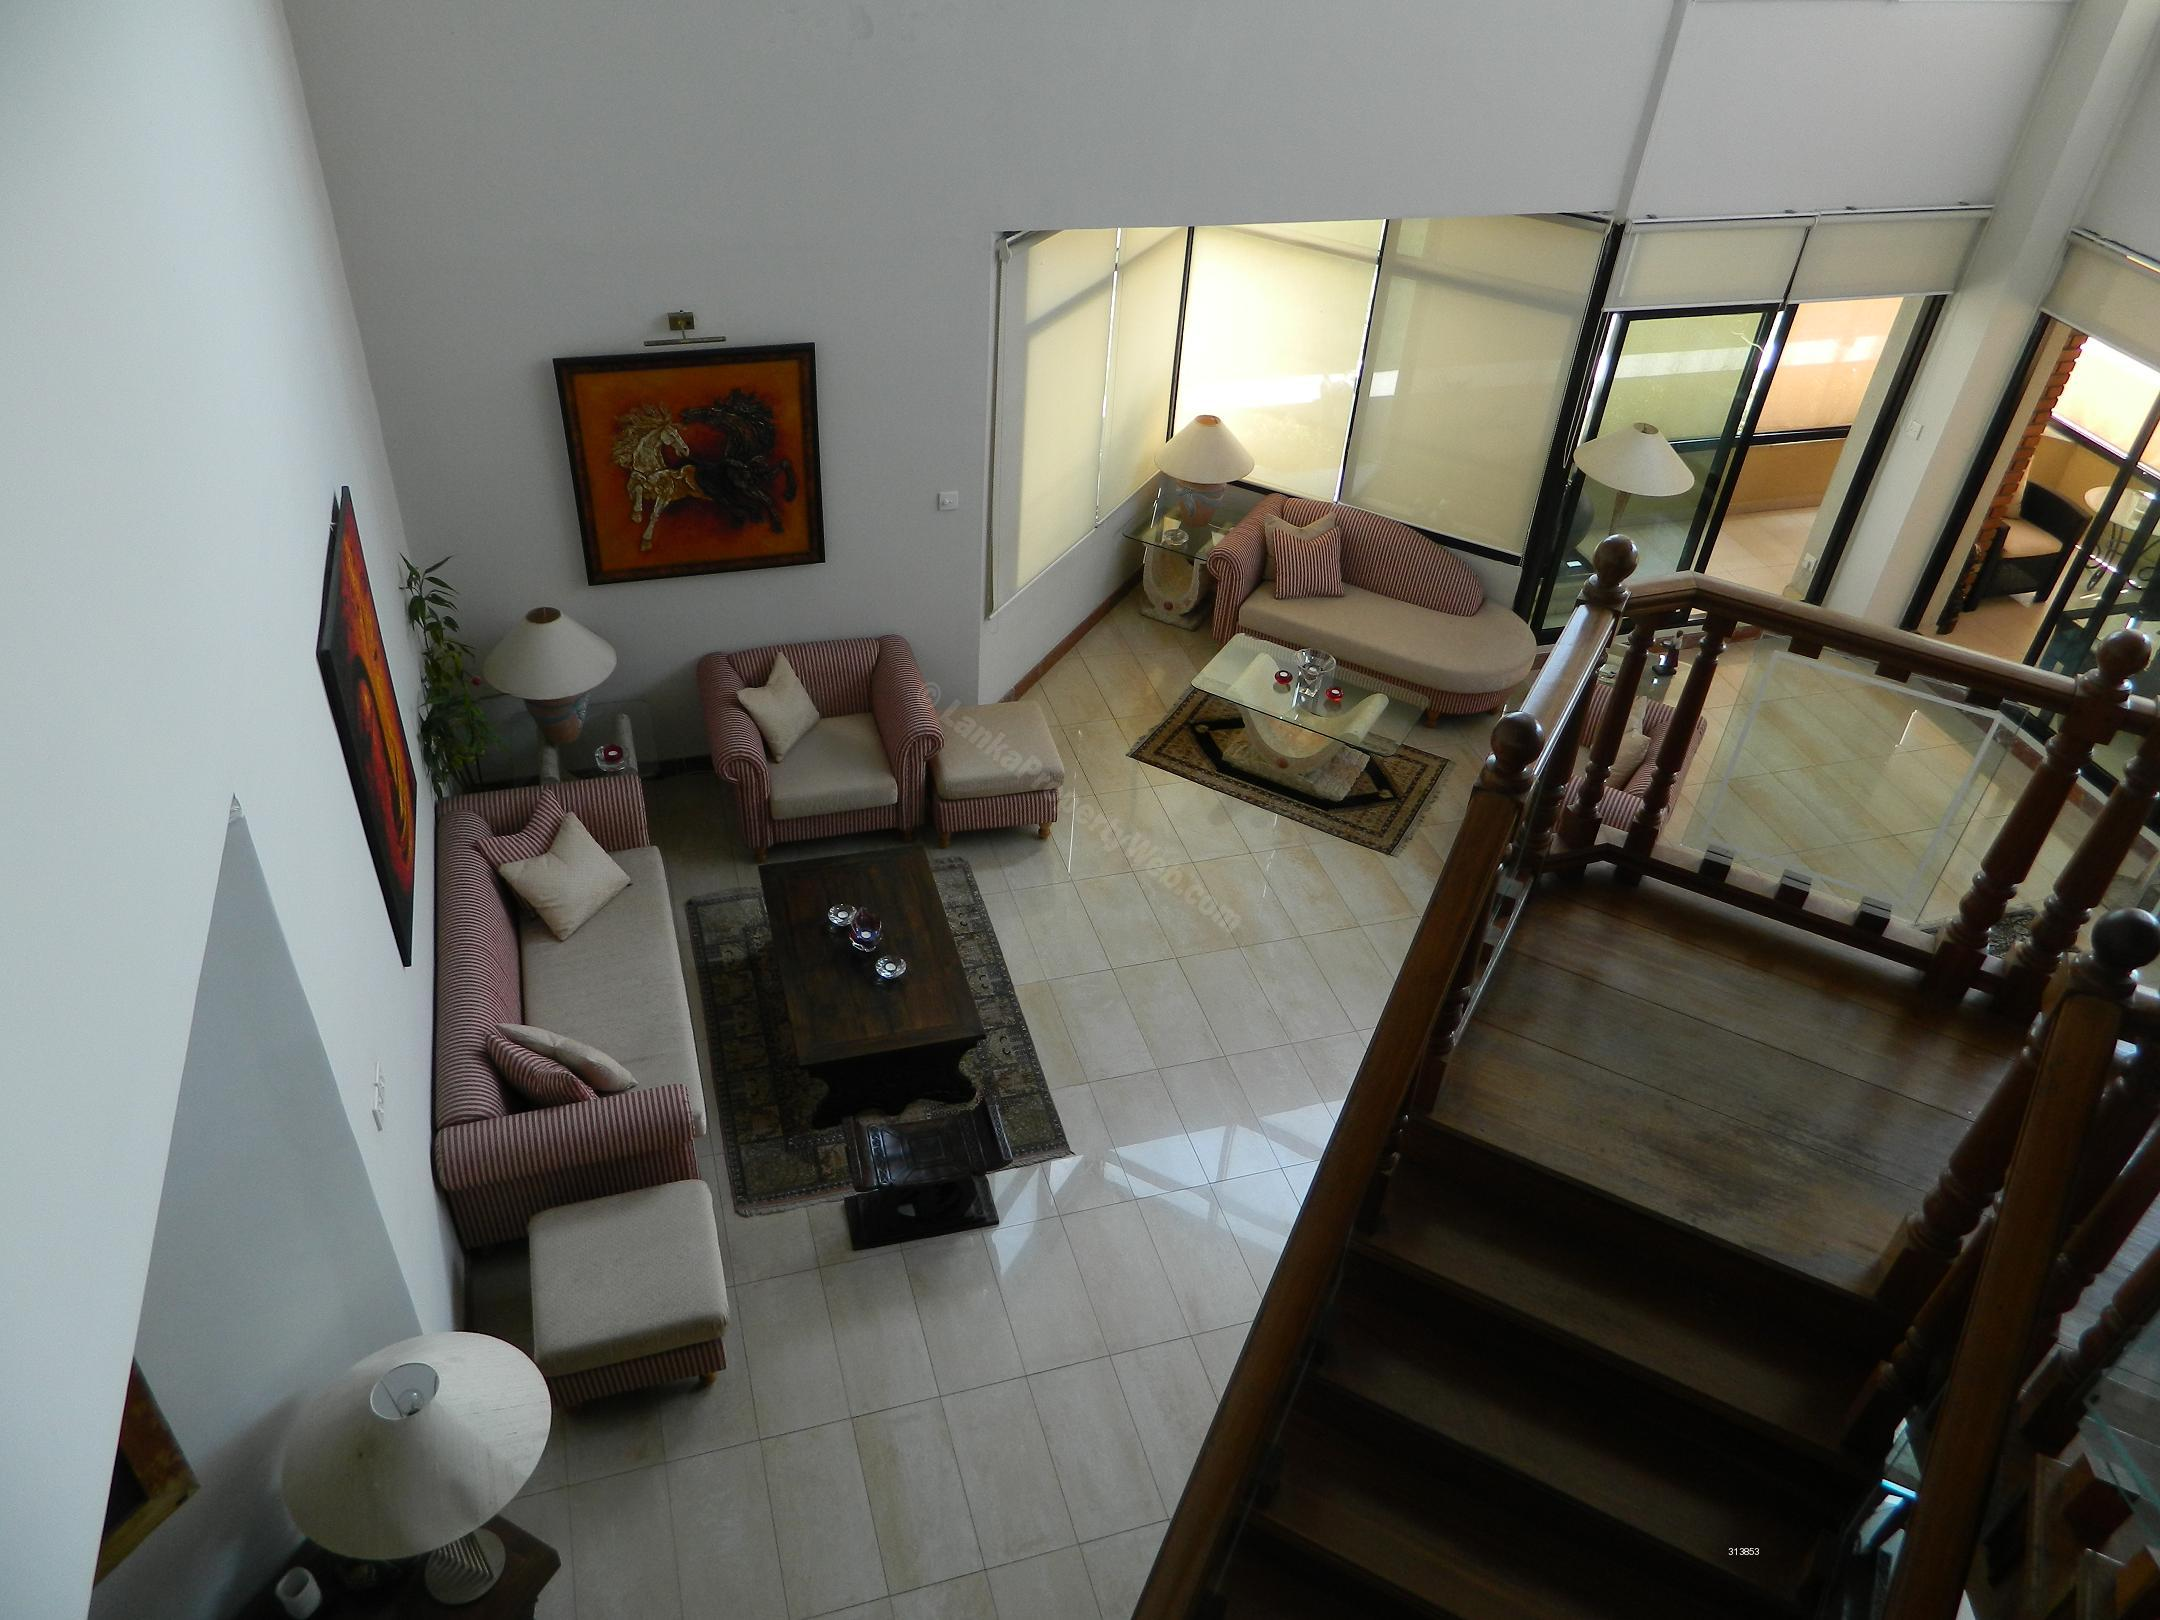 Apartment for sale in Rajagiriya - FOR SALE: Luxury Royal Park Penthouse Apartment